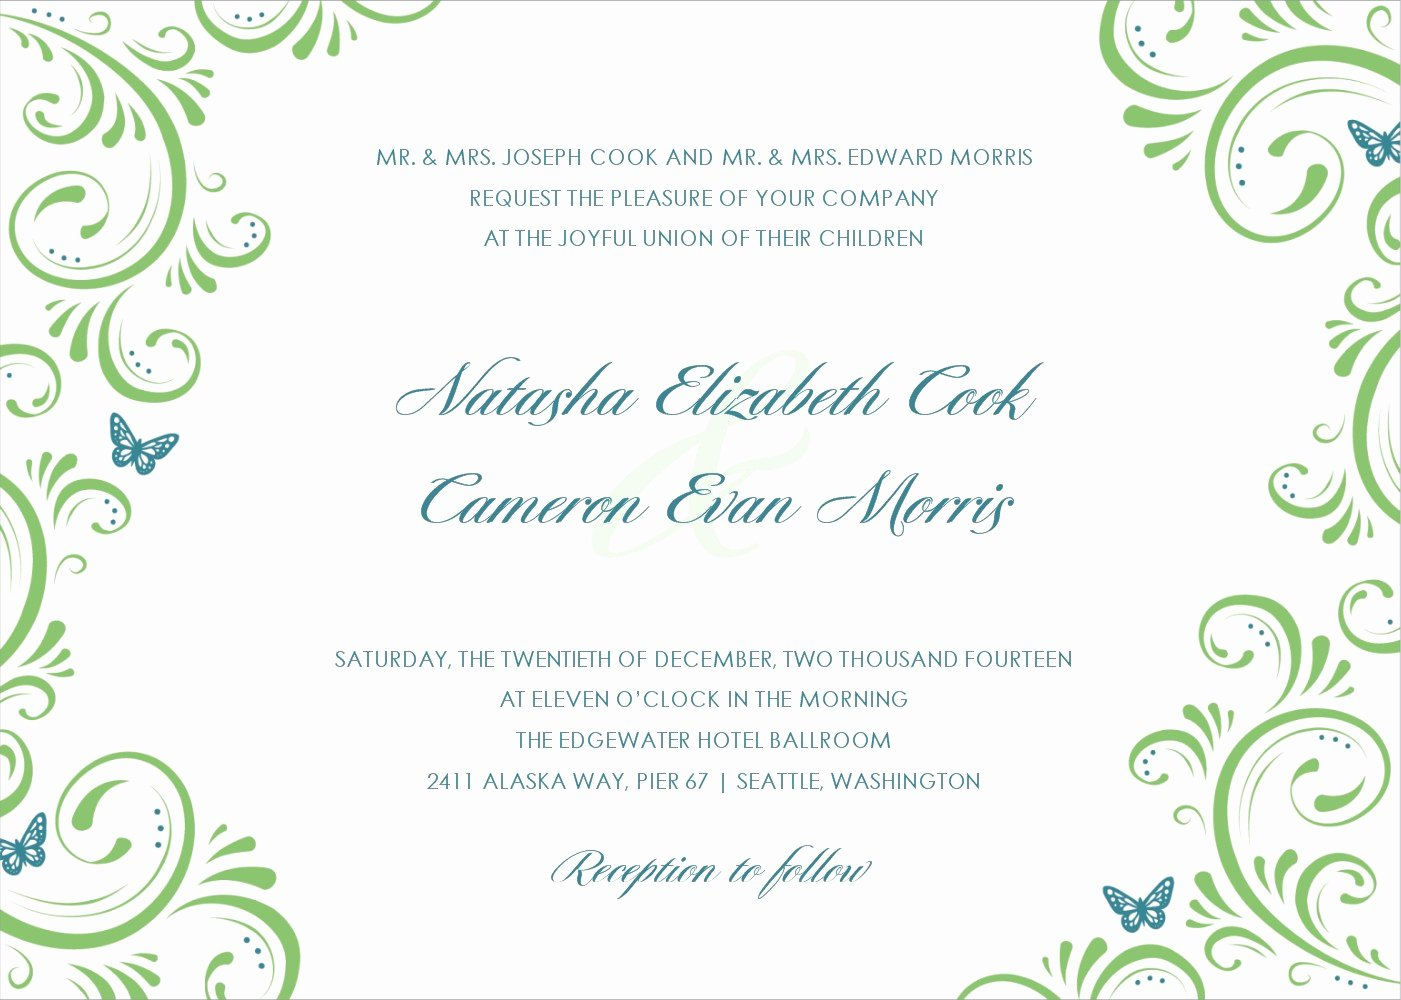 Wedding Invitation Templates Free Beautiful Applying the Wedding Planning Templates